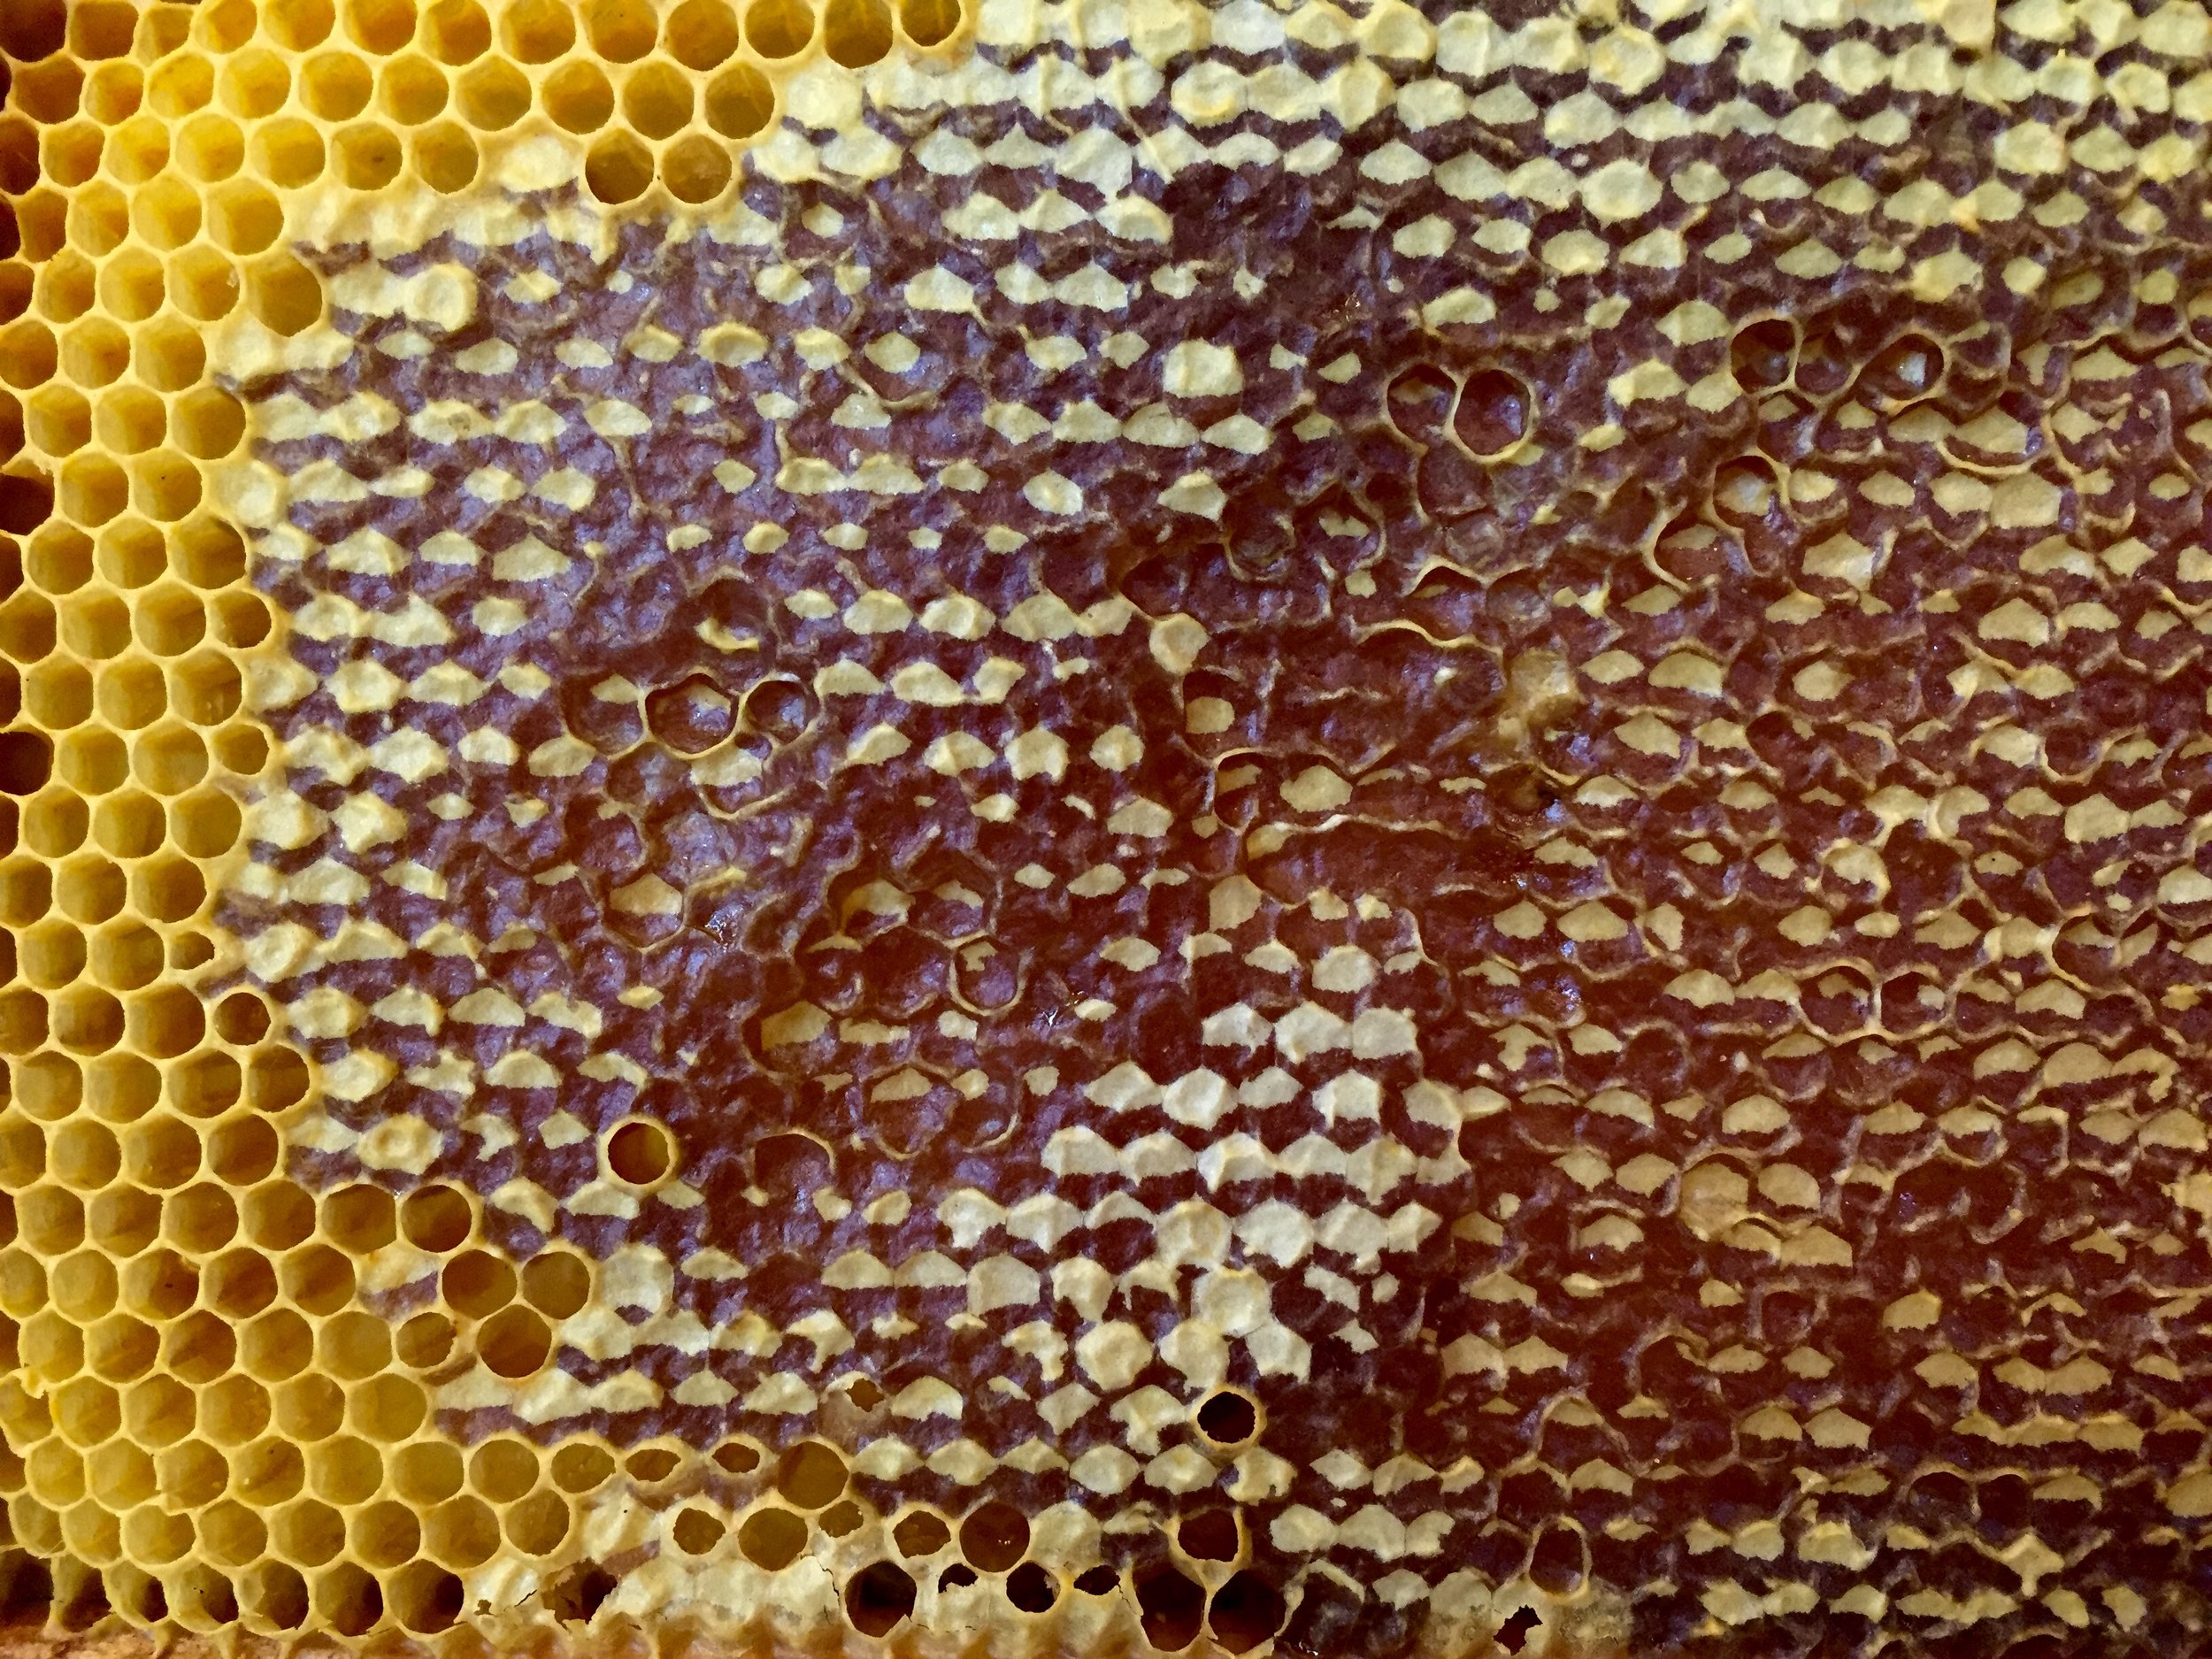 Frederick Honey for Mead